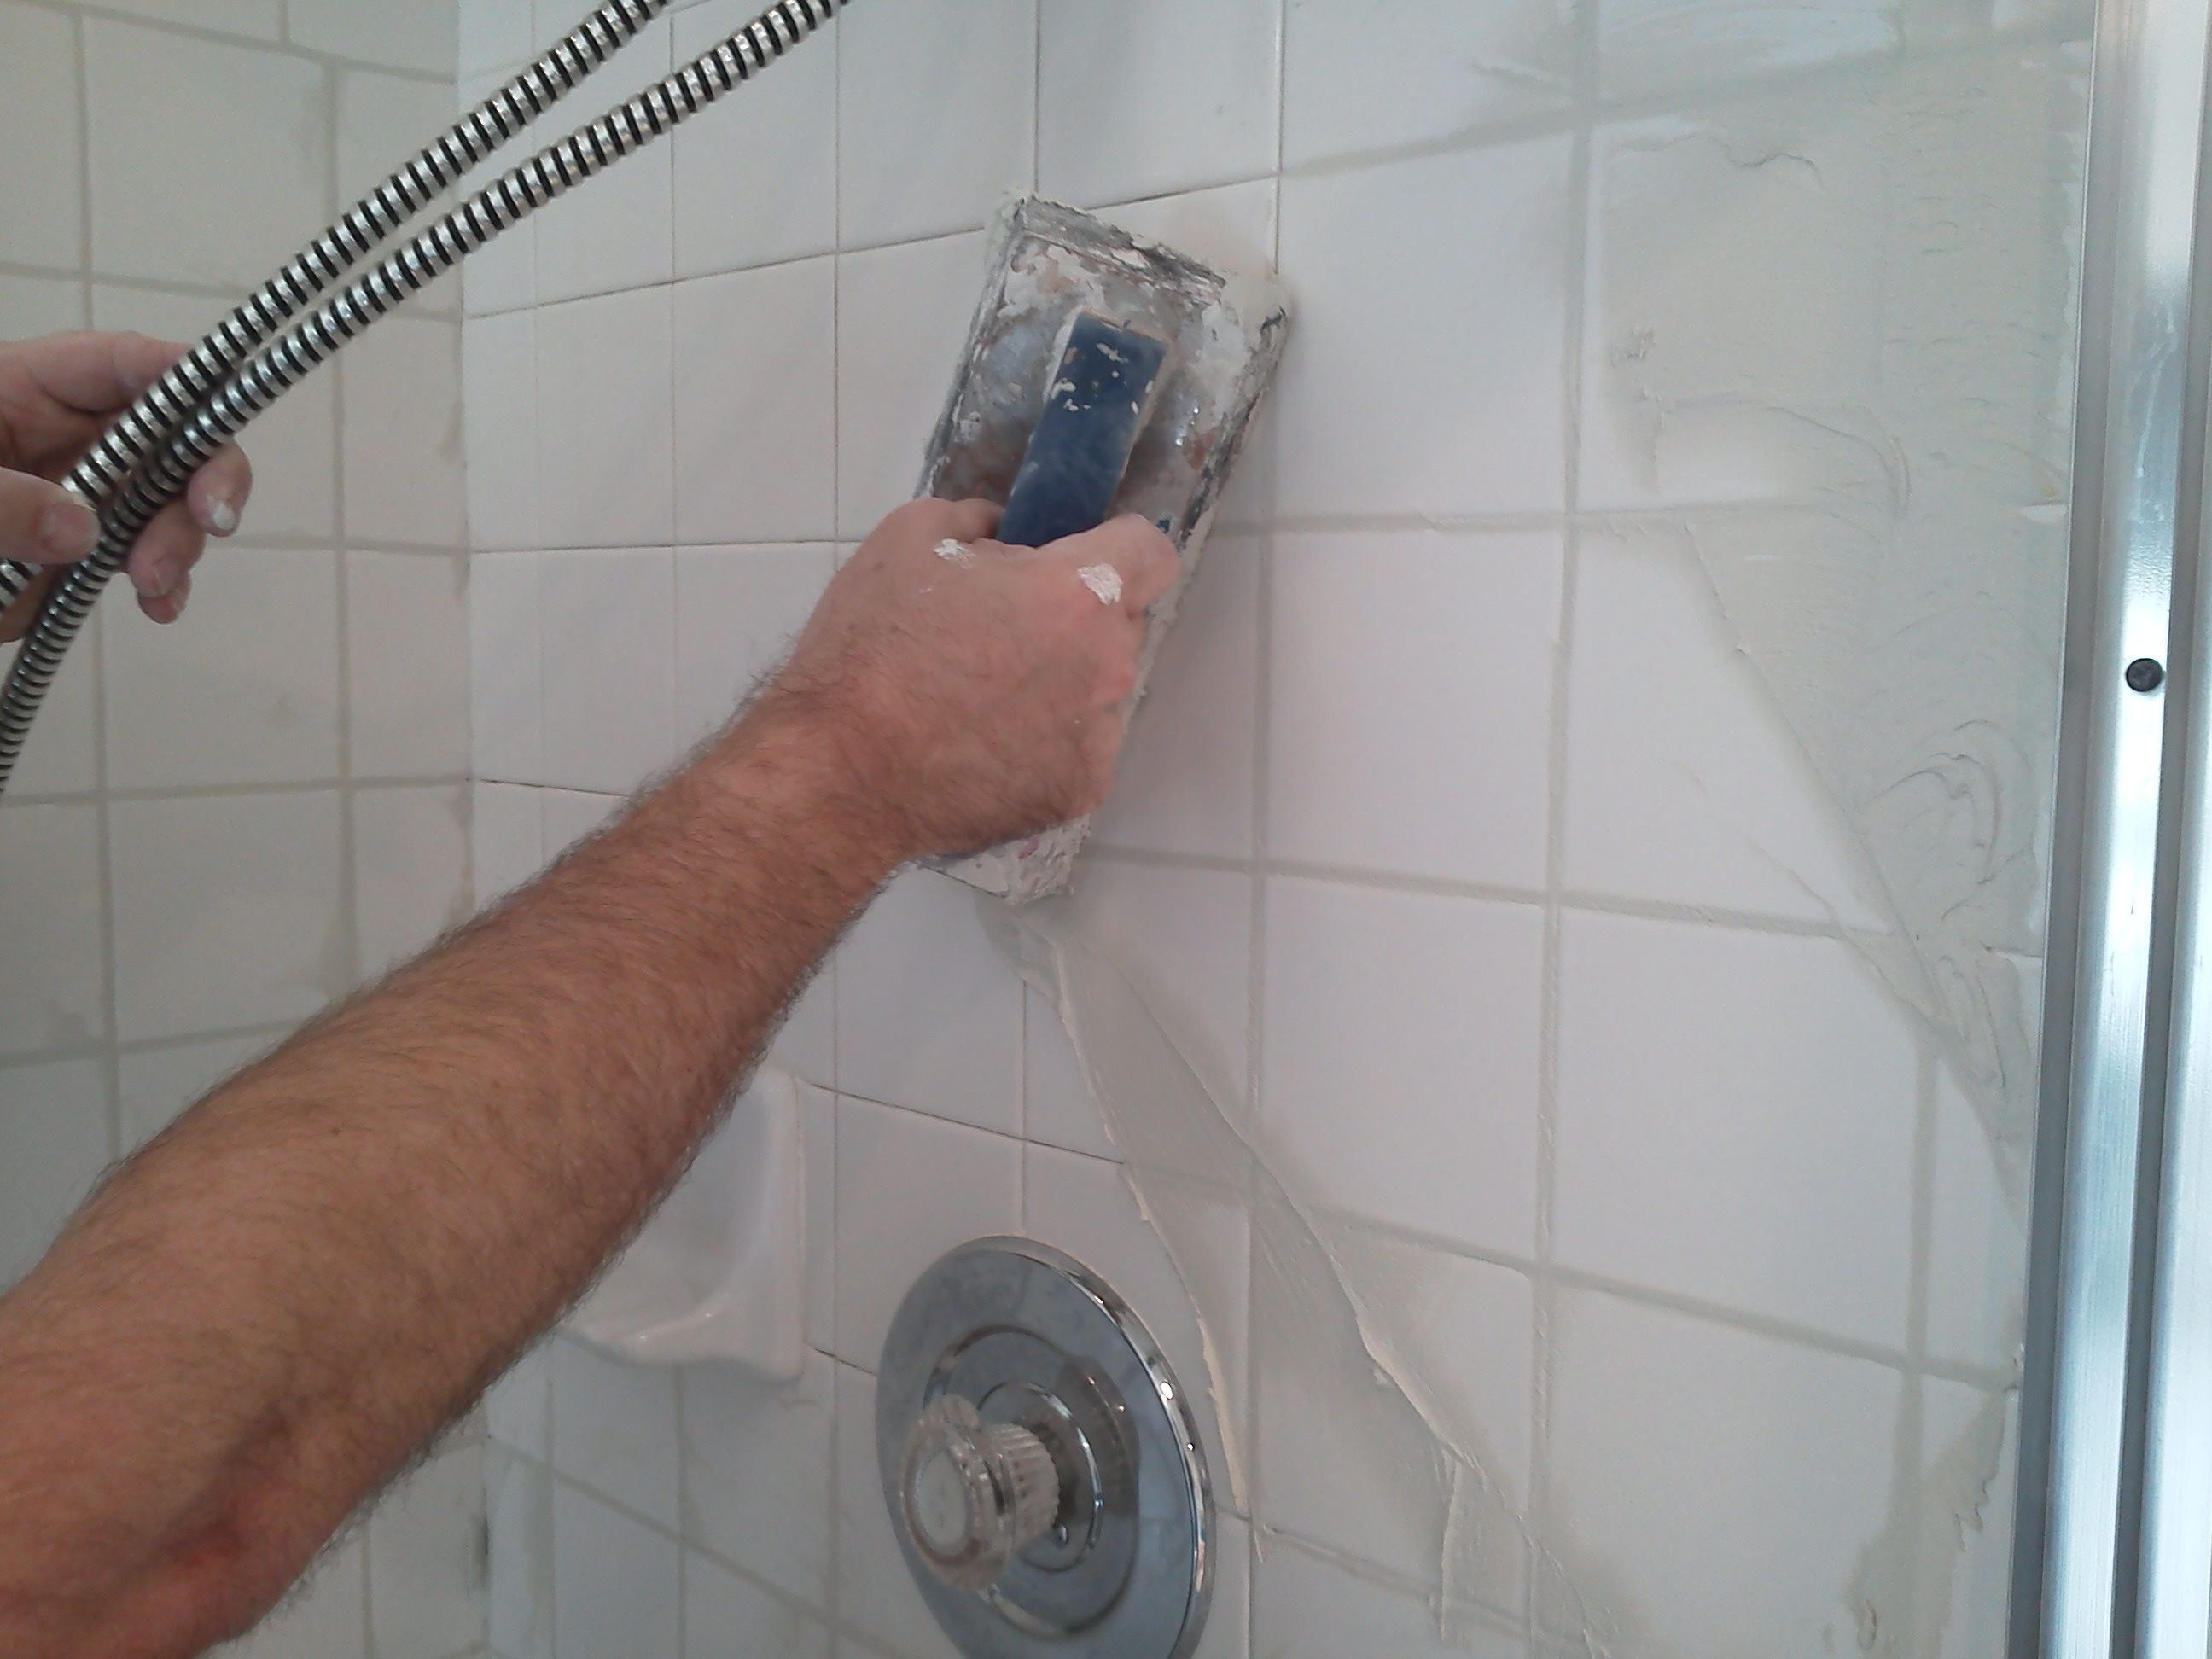 How to clean tile grout hirerush blog man regrouting tile dailygadgetfo Gallery